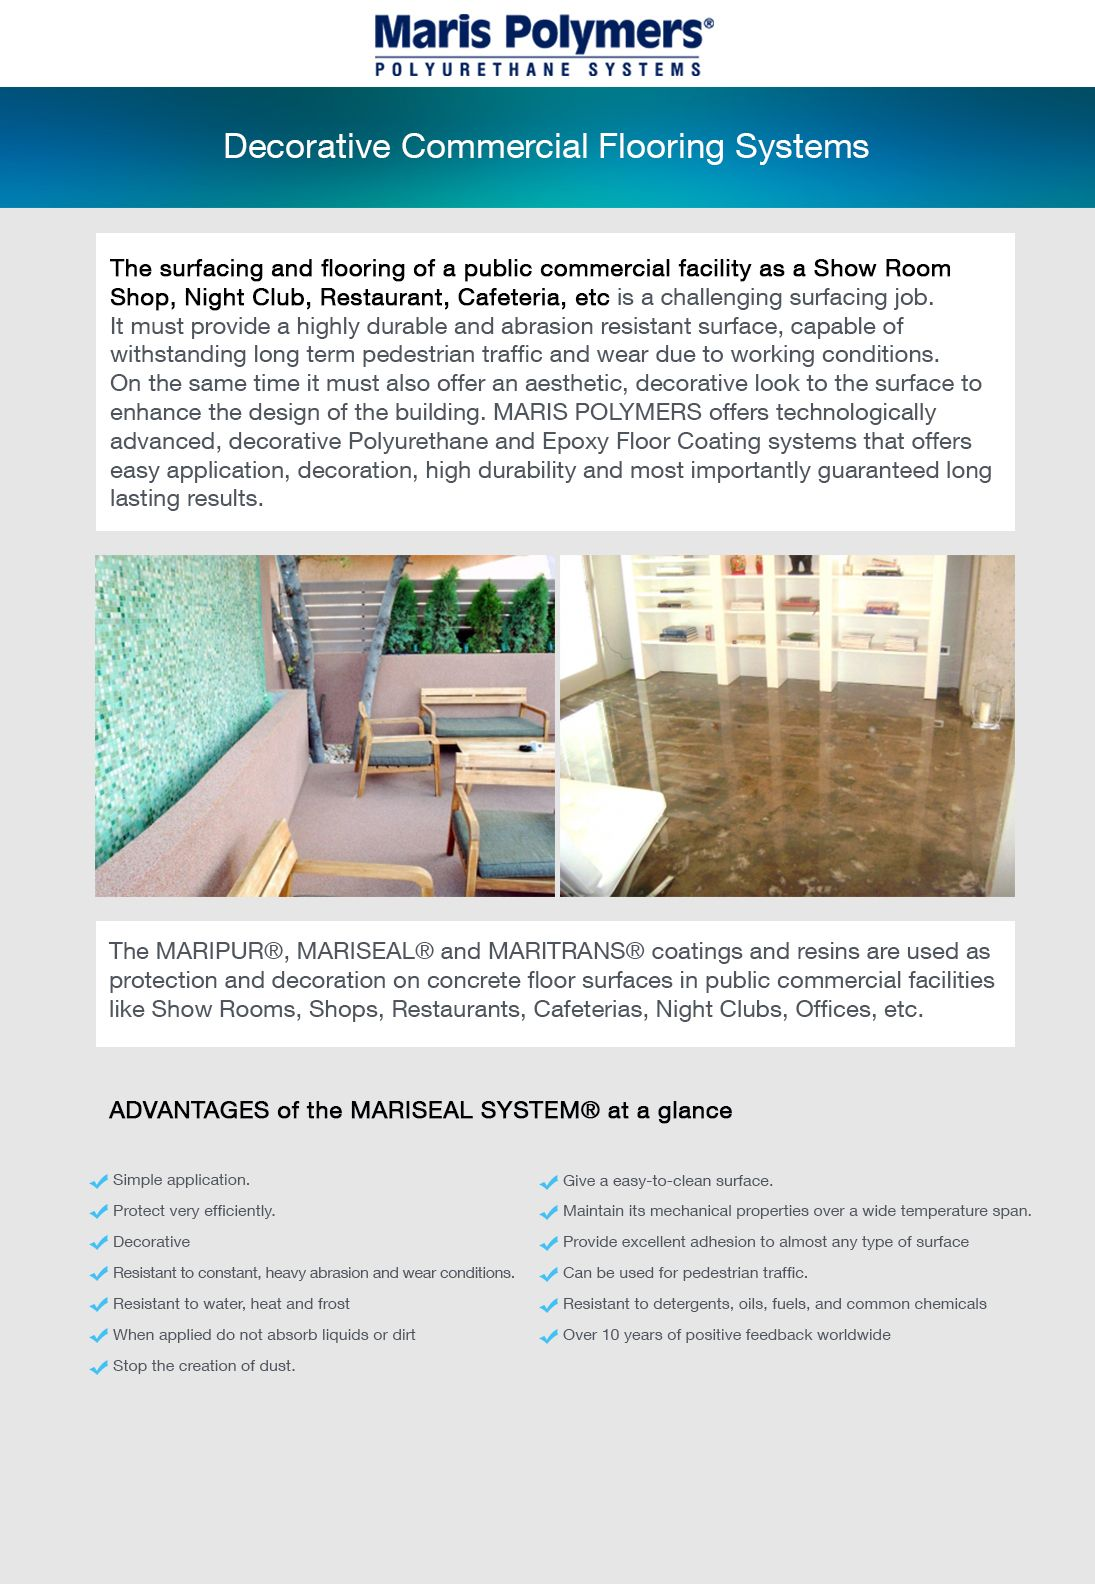 marispolymers, DecorativeFlooringSystems (With images)